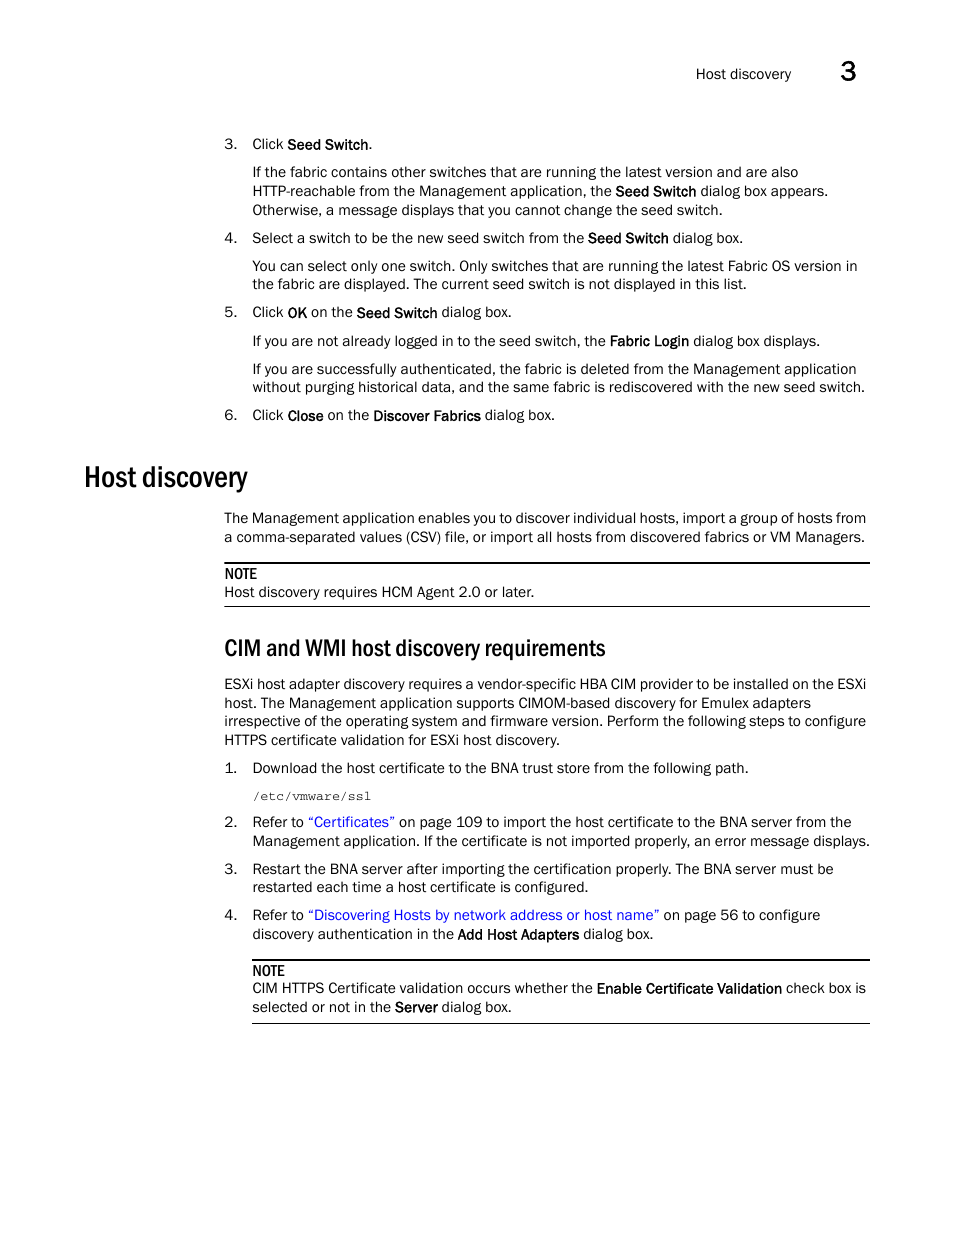 Host discovery, Cim and wmi host discovery requirements | Brocade